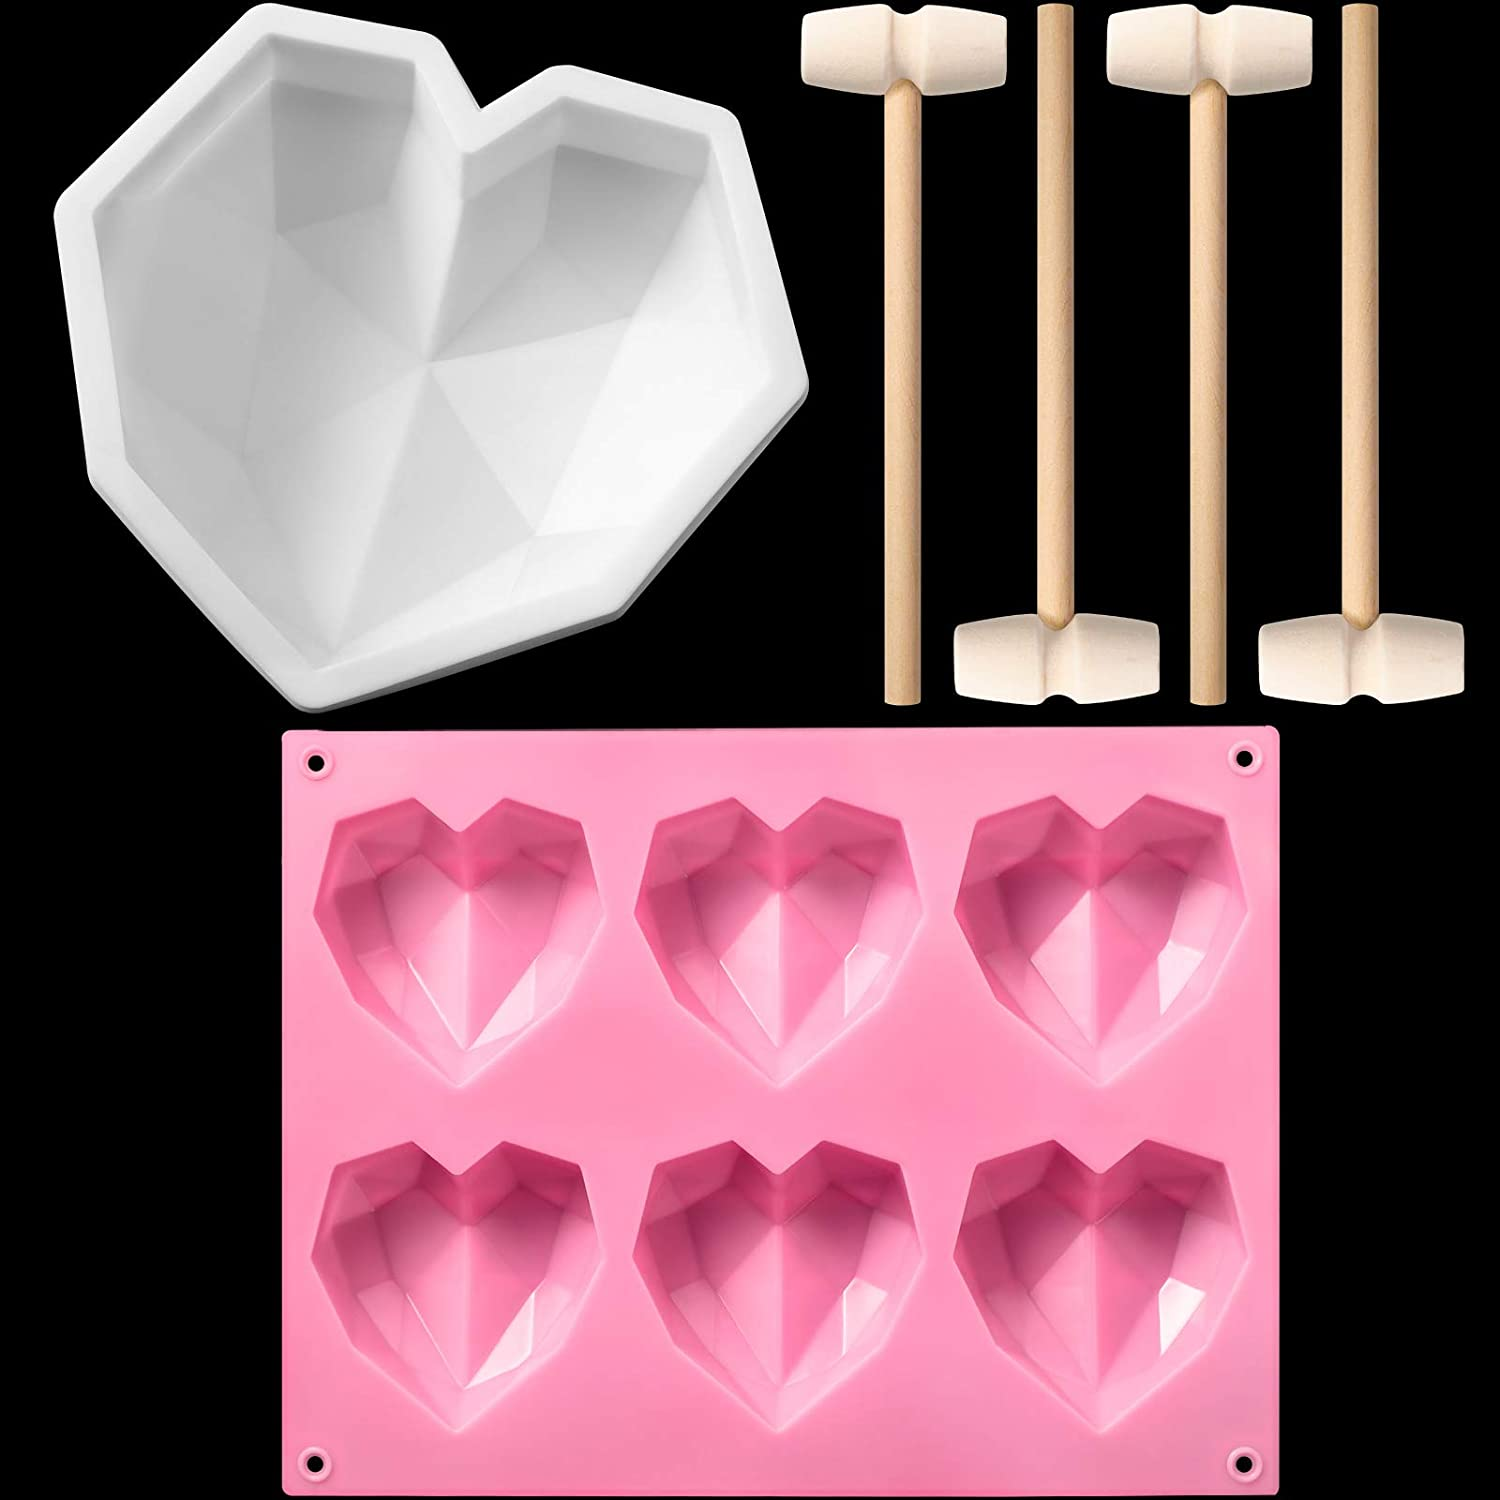 2 Pieces Silicone Heart Mold Diamond Heart Mousse Cake Mold 6 Holes Heart Shaped Silicone Mold with 4 Mini Wooden Hammers Mallet Pounding Tool for Chocolate Ice Cream Candy Candle (Pink, White)